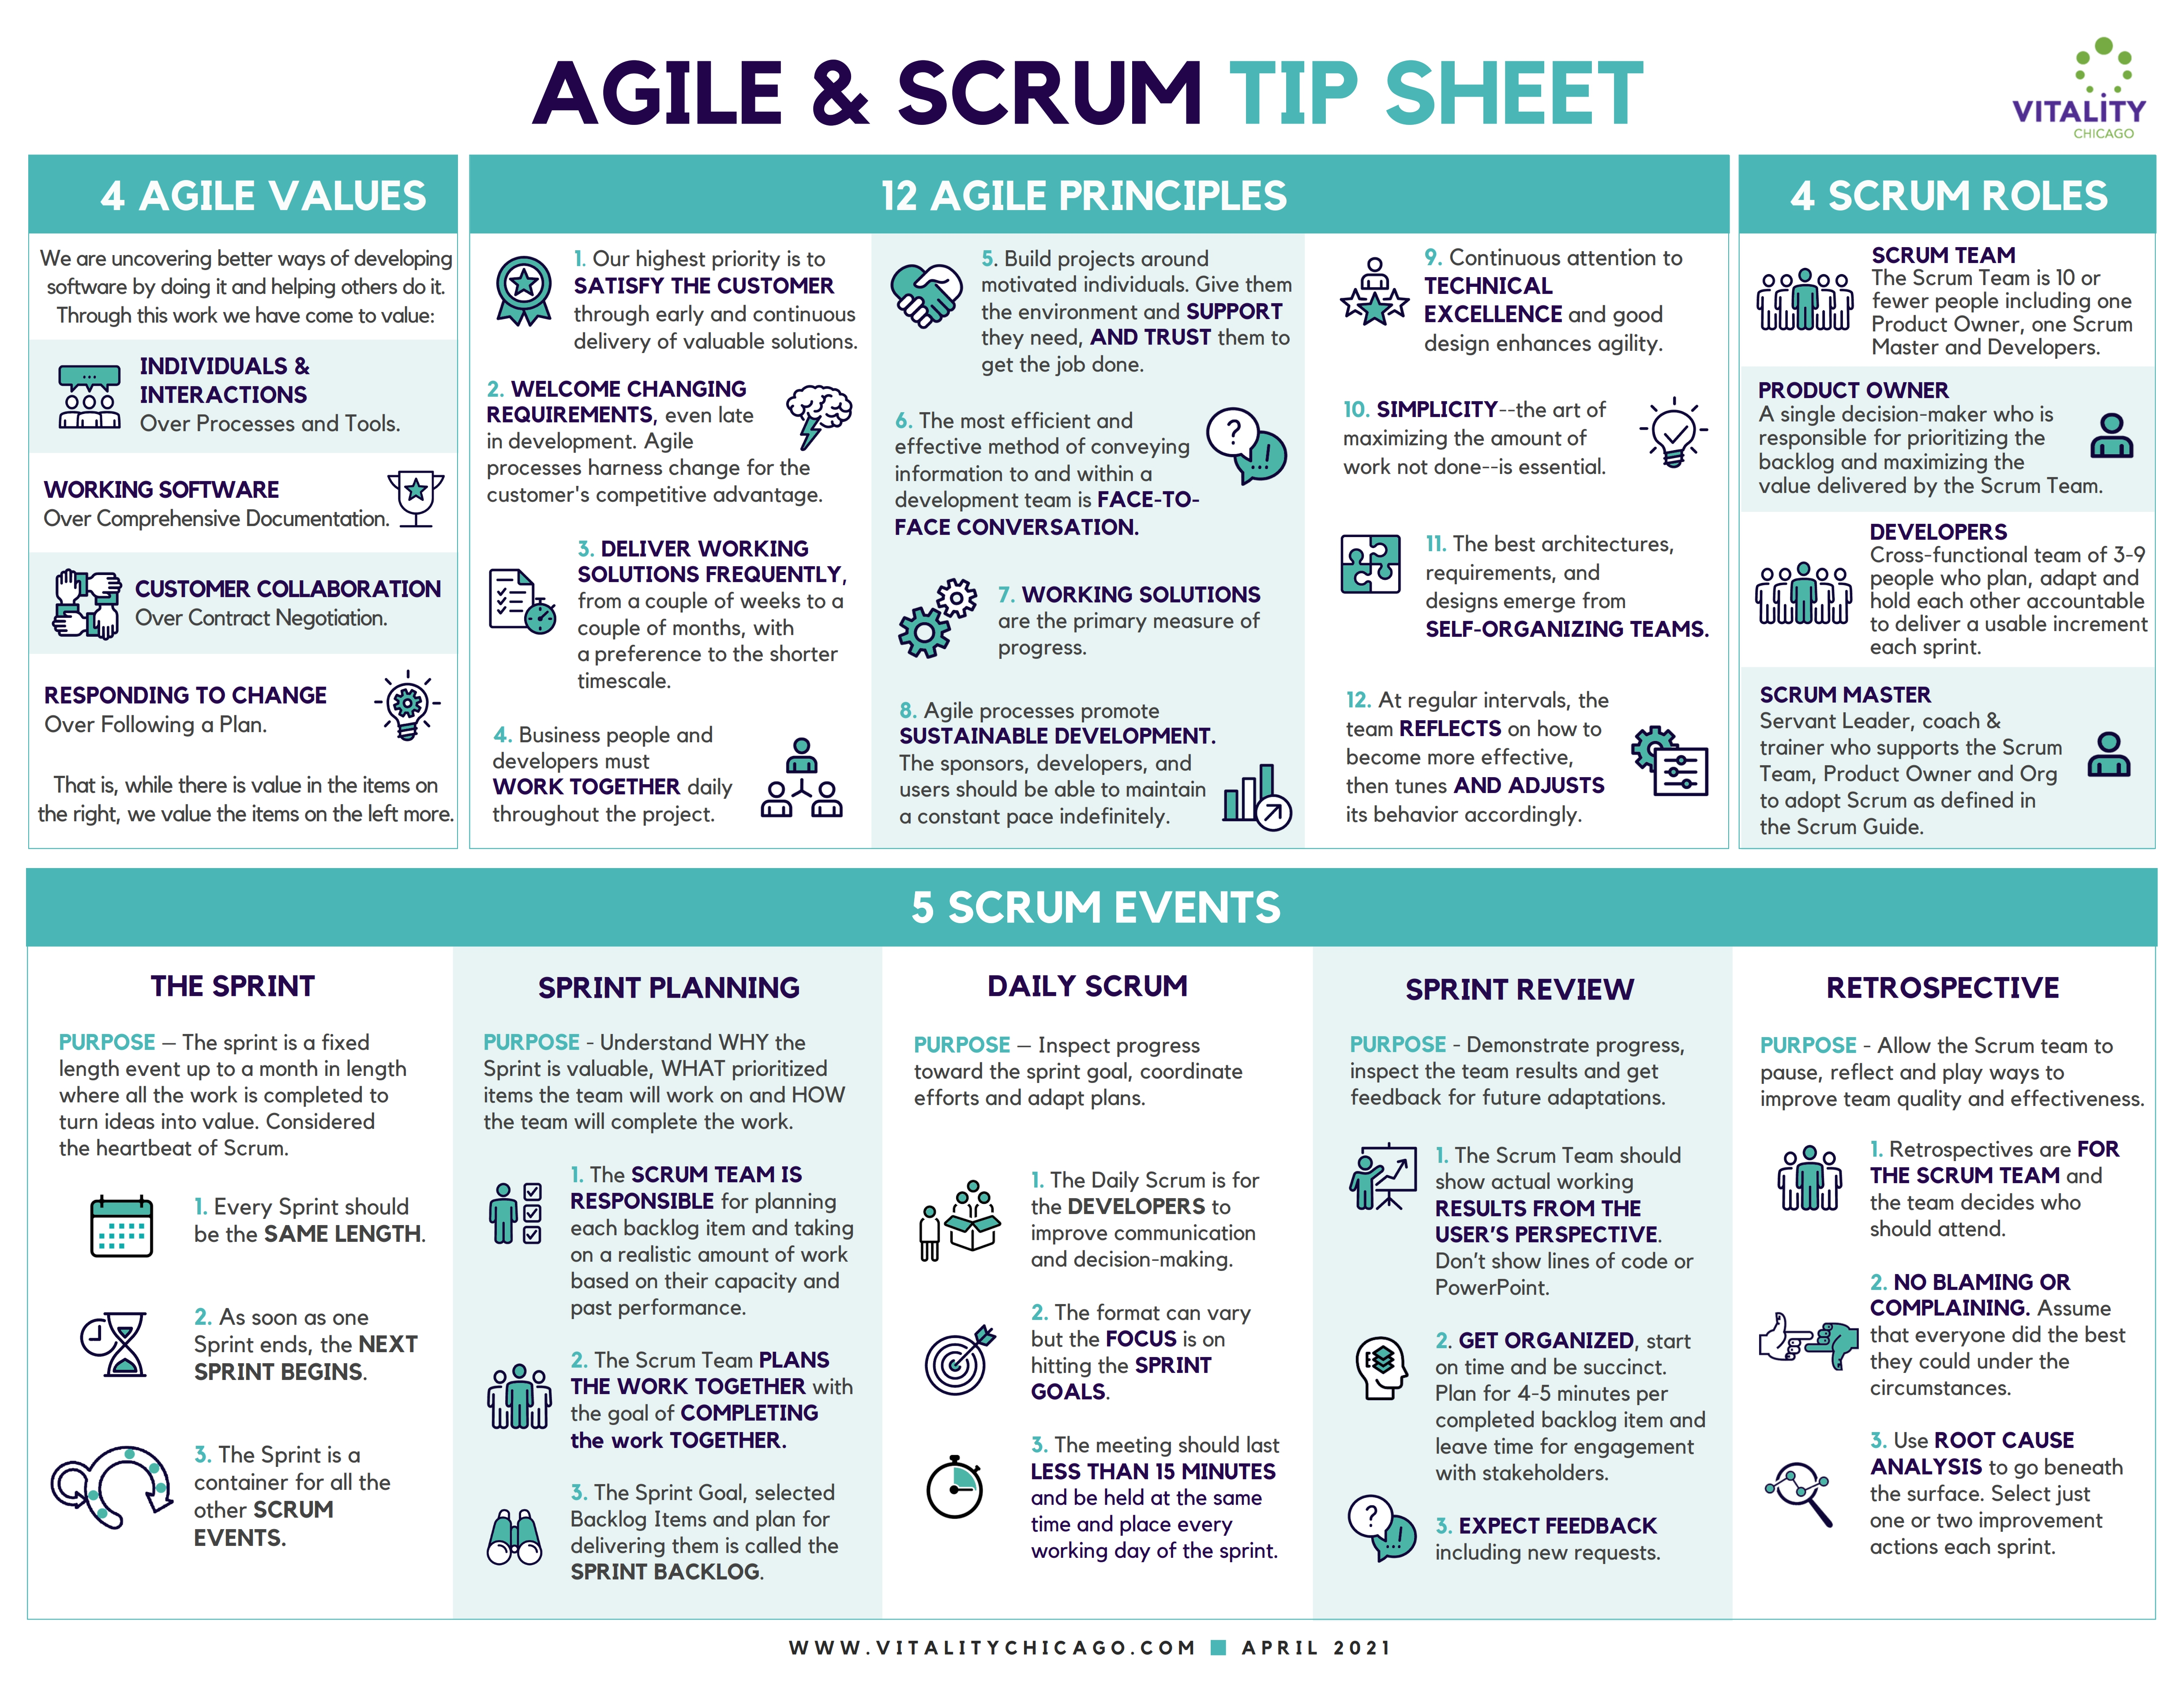 Agile and Scrum Tip Sheet from Vitality Chicago Inc April 2021